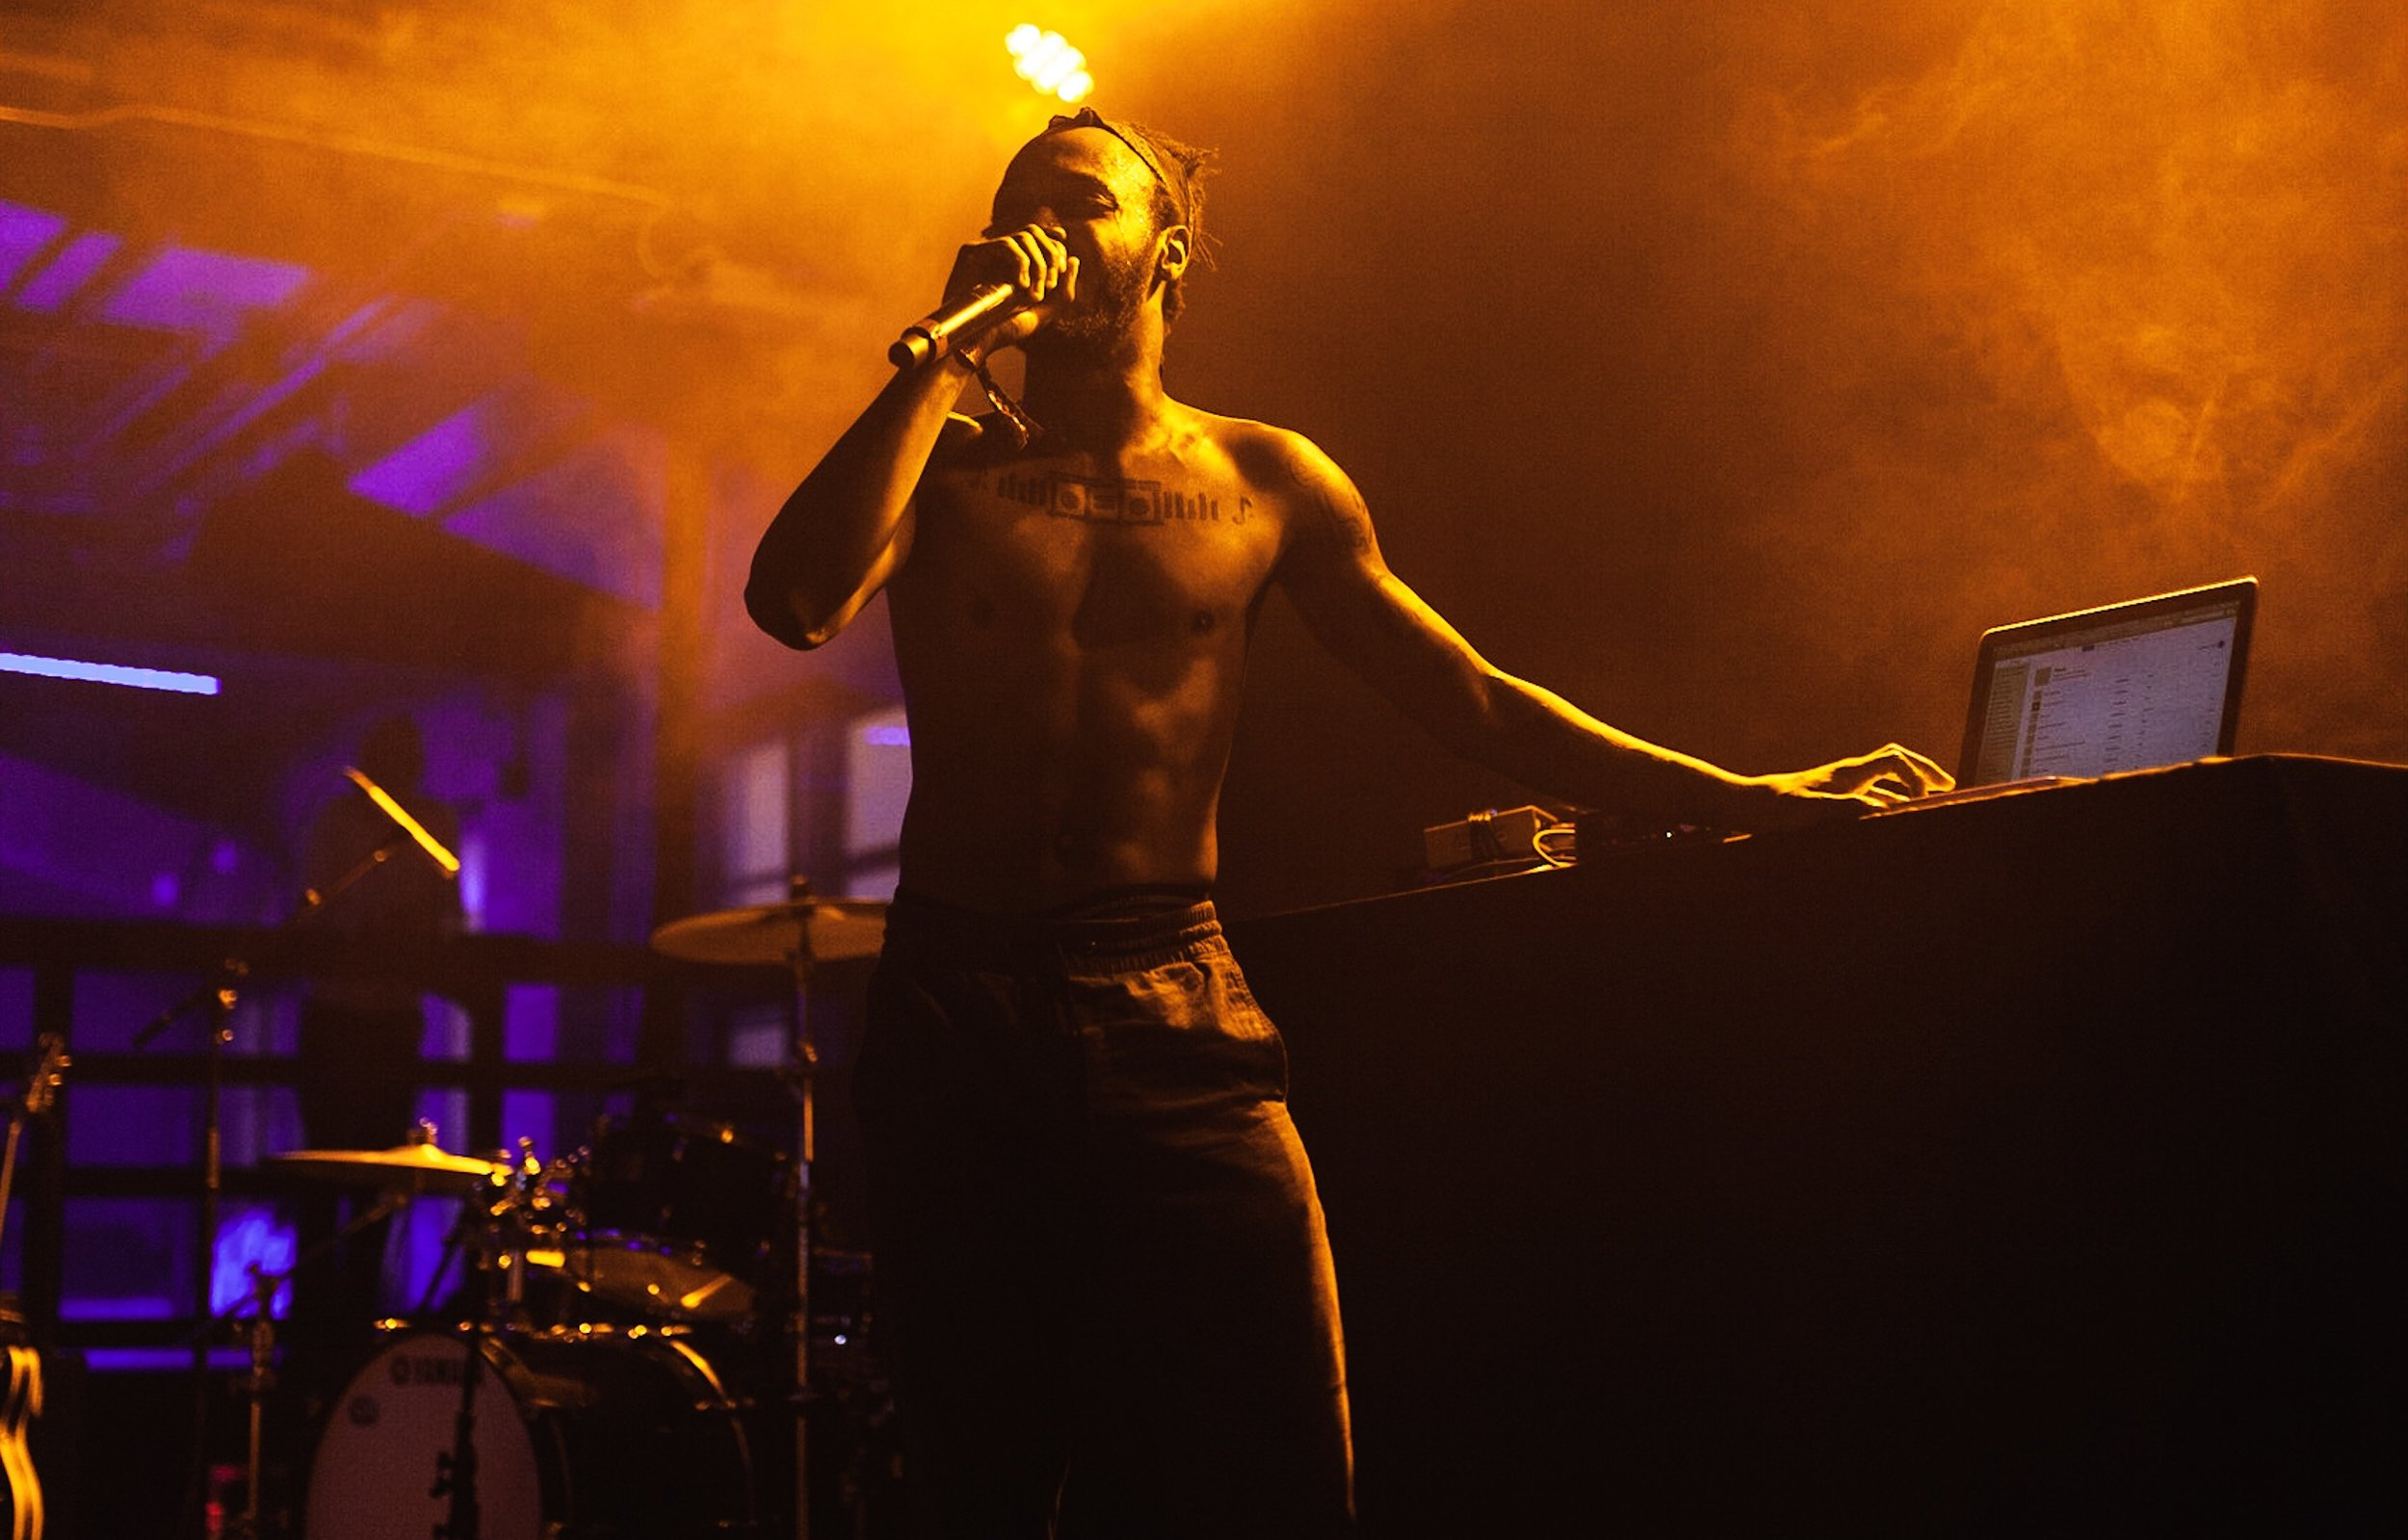 JPEGMAFIA at House of Vans in 2018 (Photo by Julien Carr for These Days)